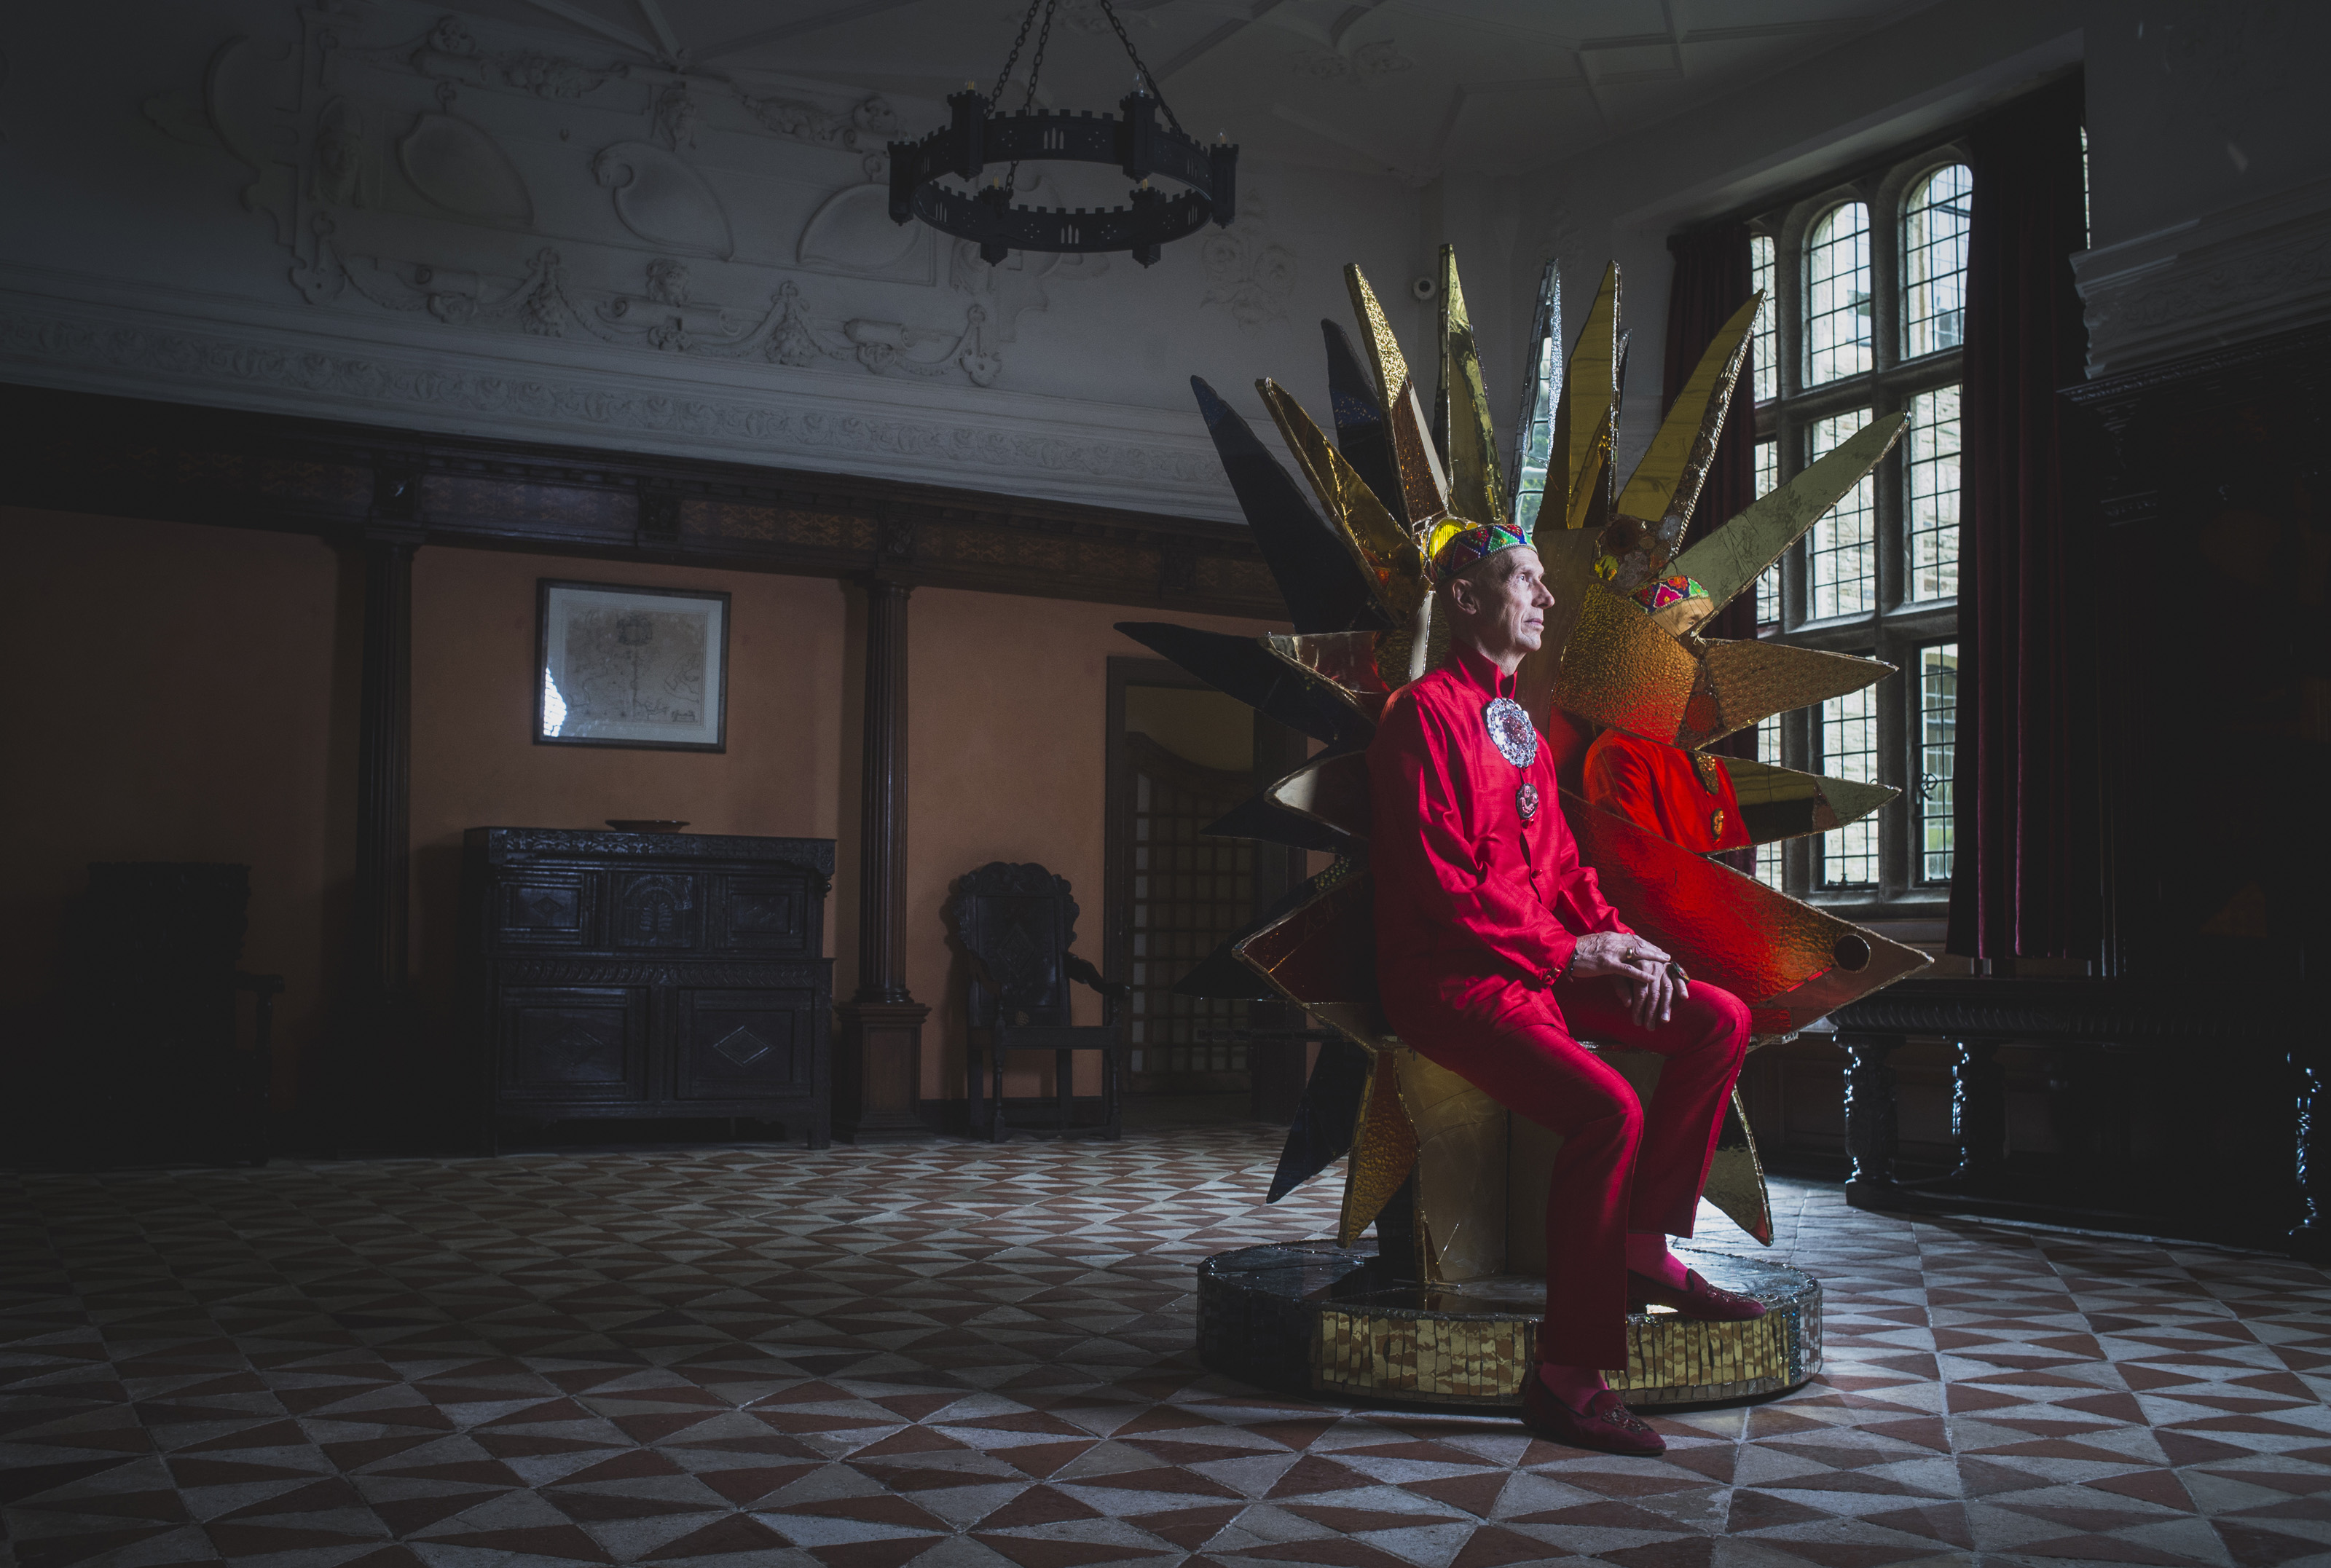 Andrew Logan with his sculpture 'Universe Throne' part of 'The Art of Reflection', at Buckland Abbey.